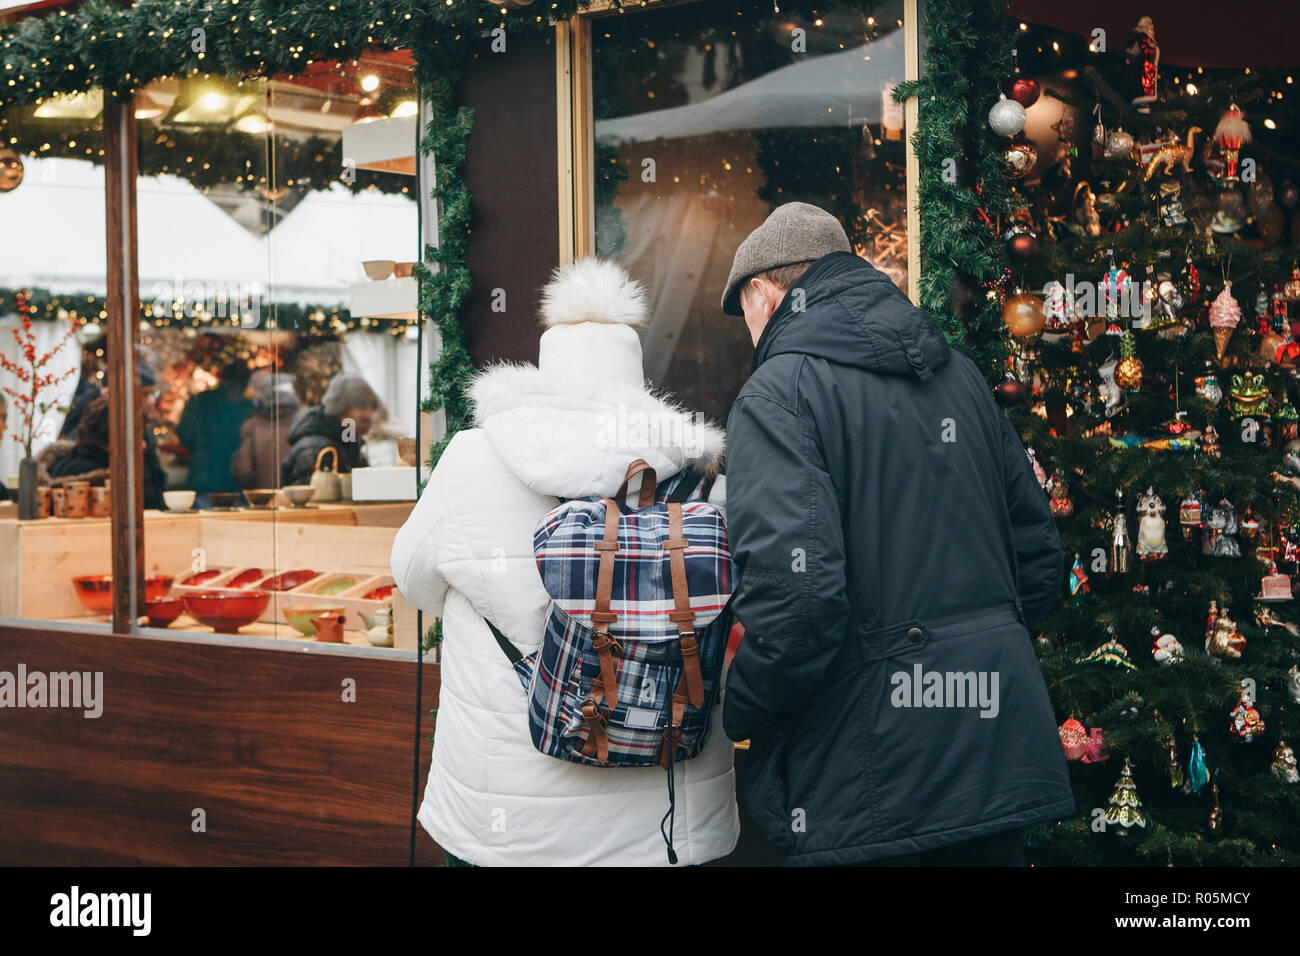 People choose Christmas gifts at the traditional decorated Christmas ...